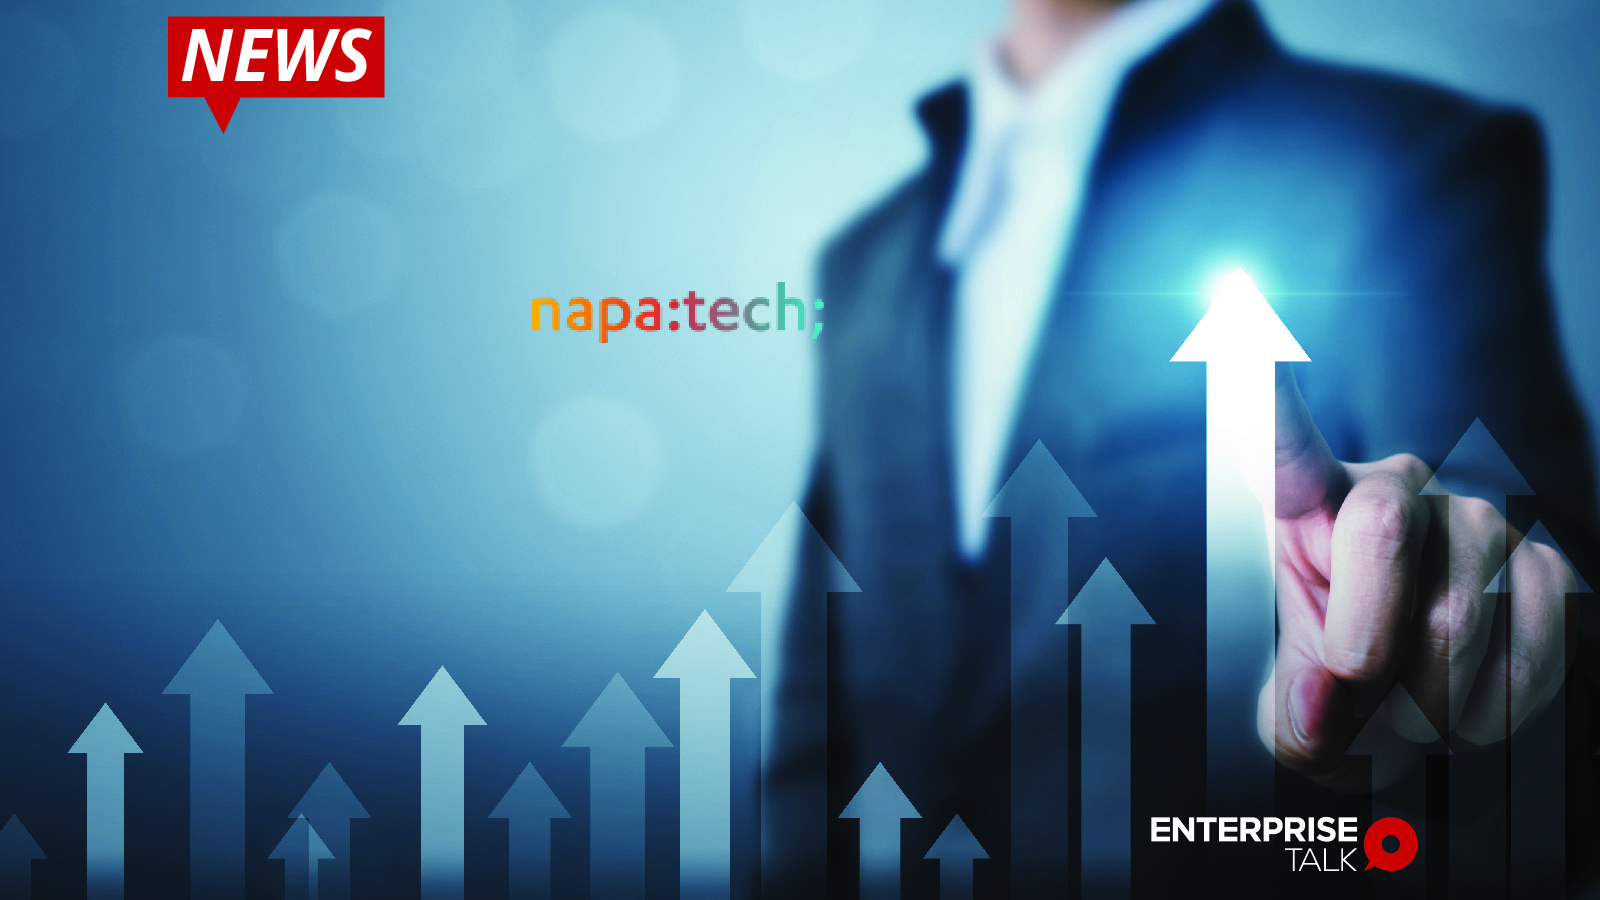 Napatech, Application Performance, Virtualized Servers